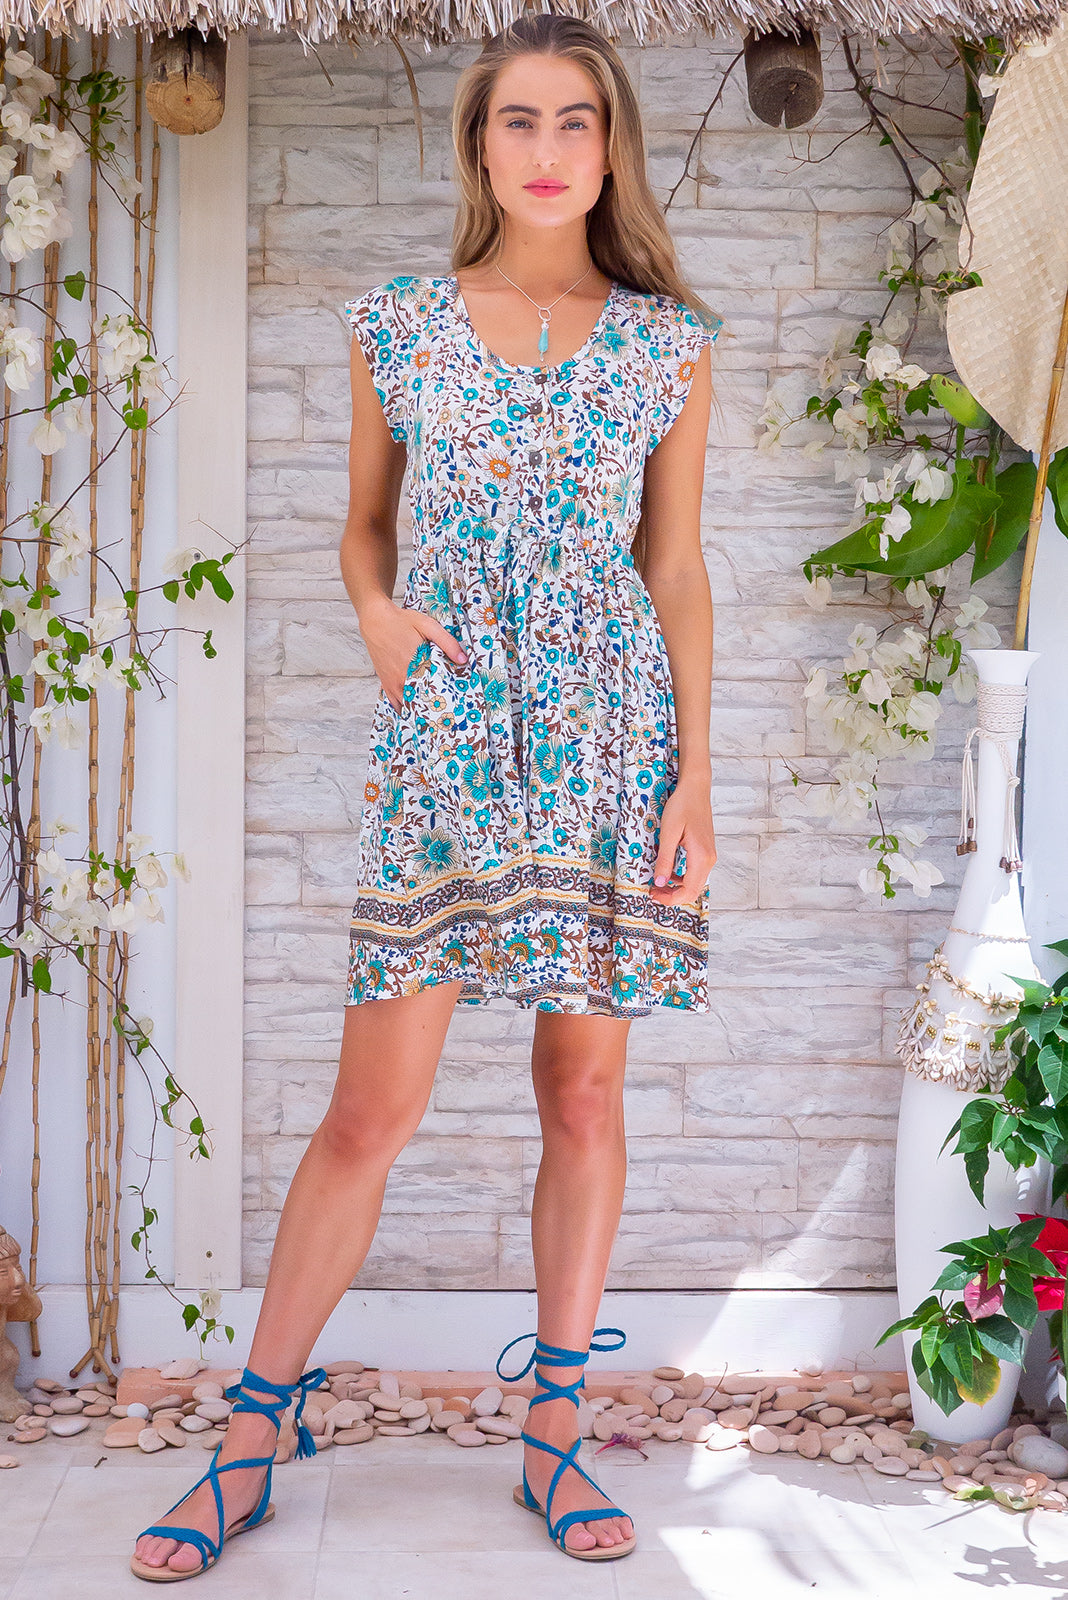 Juniper Spring Song White Mini Dress is a light-weight day dress featuring woven 100% viscose, functional button down chest to waistline, side pockets, adjustable drawstring waist in white base with multi-tonal floral design.